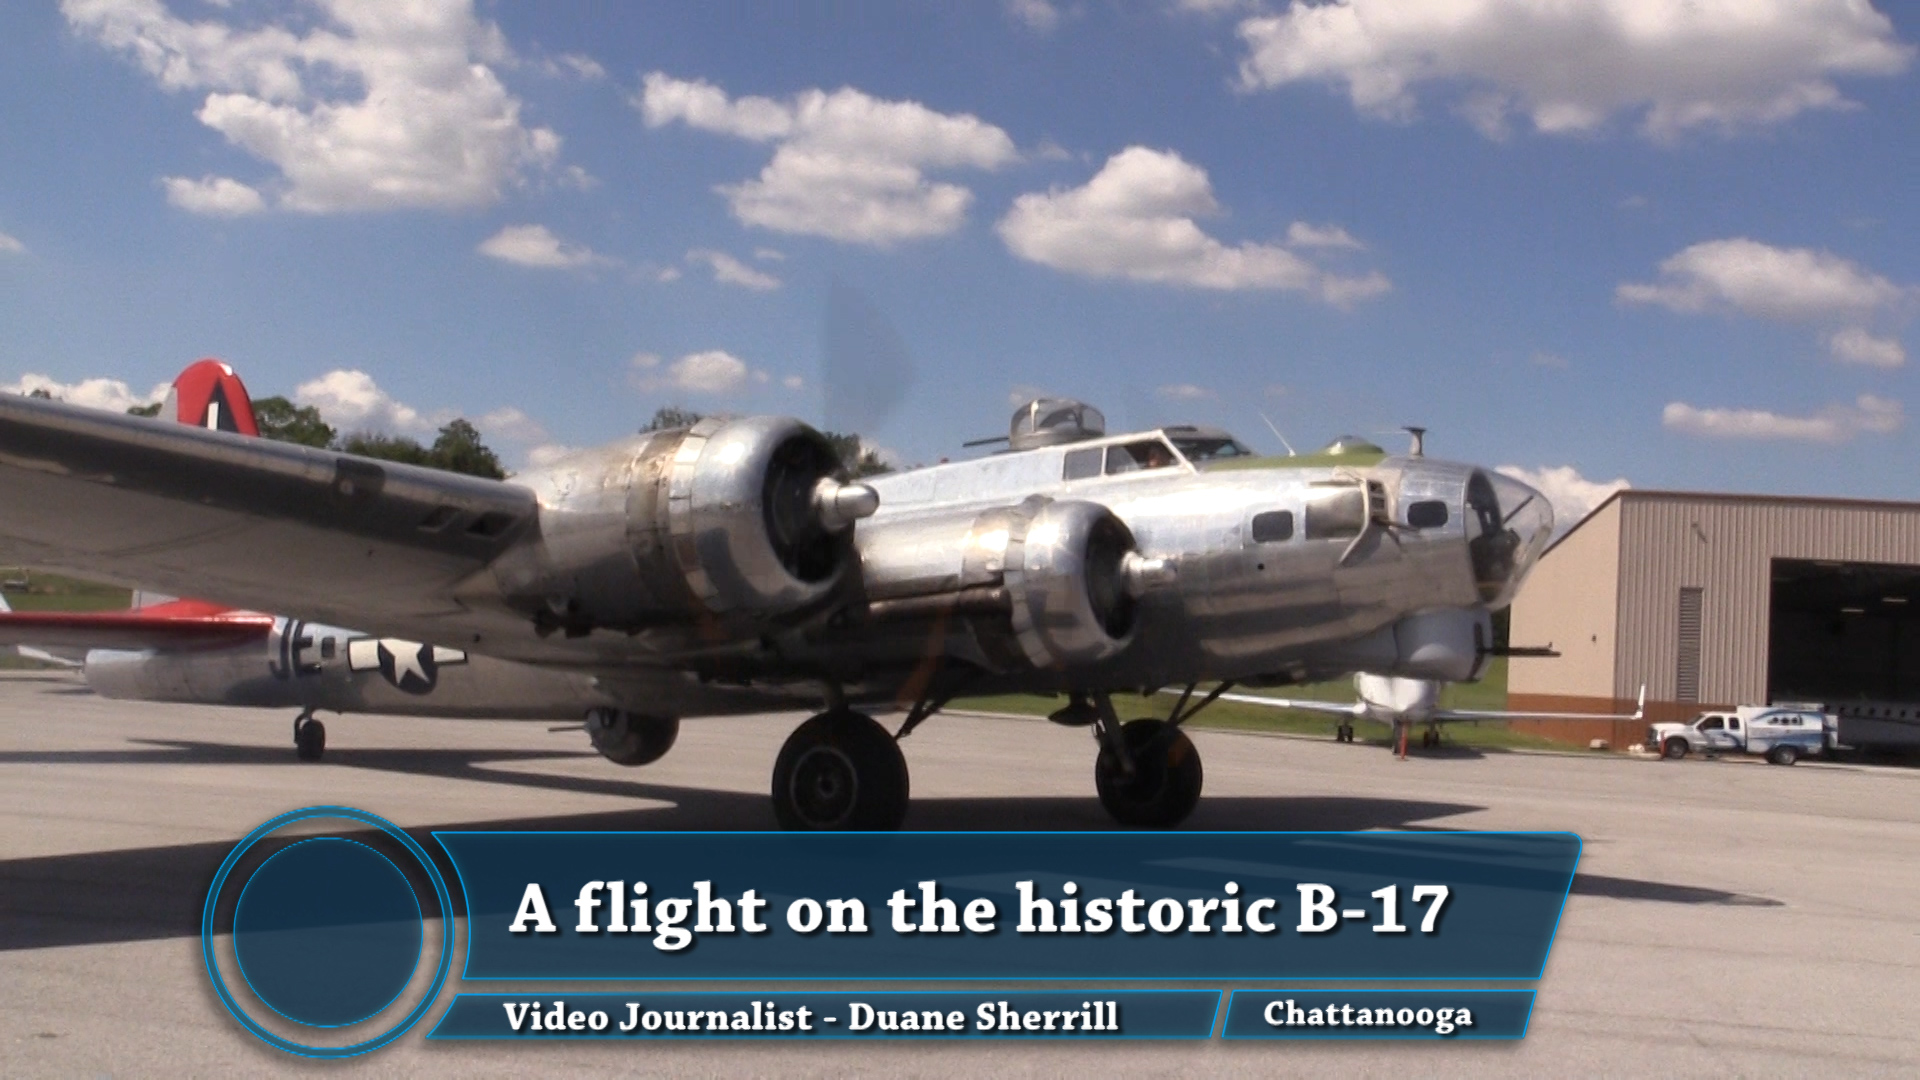 VIDEO - A Flight on the B-17